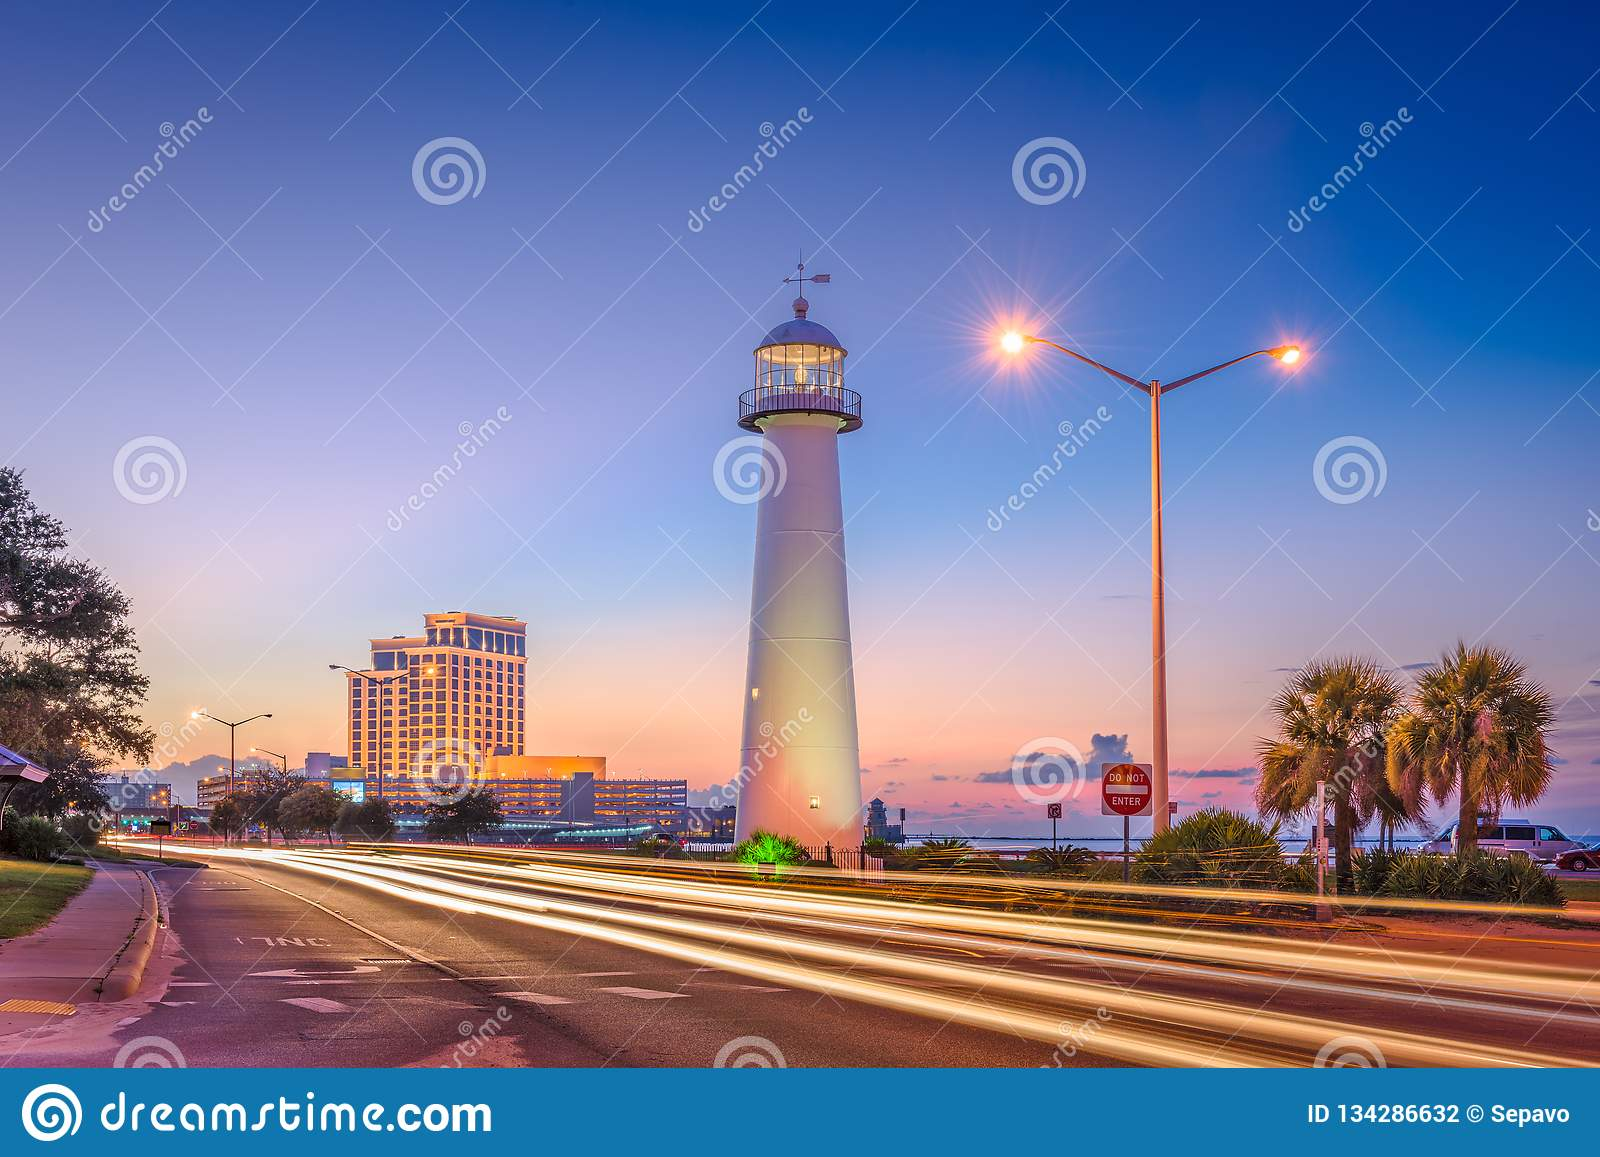 Biloxi Mississippi Usa At Biloxi Lighthouse Stock Photo Image